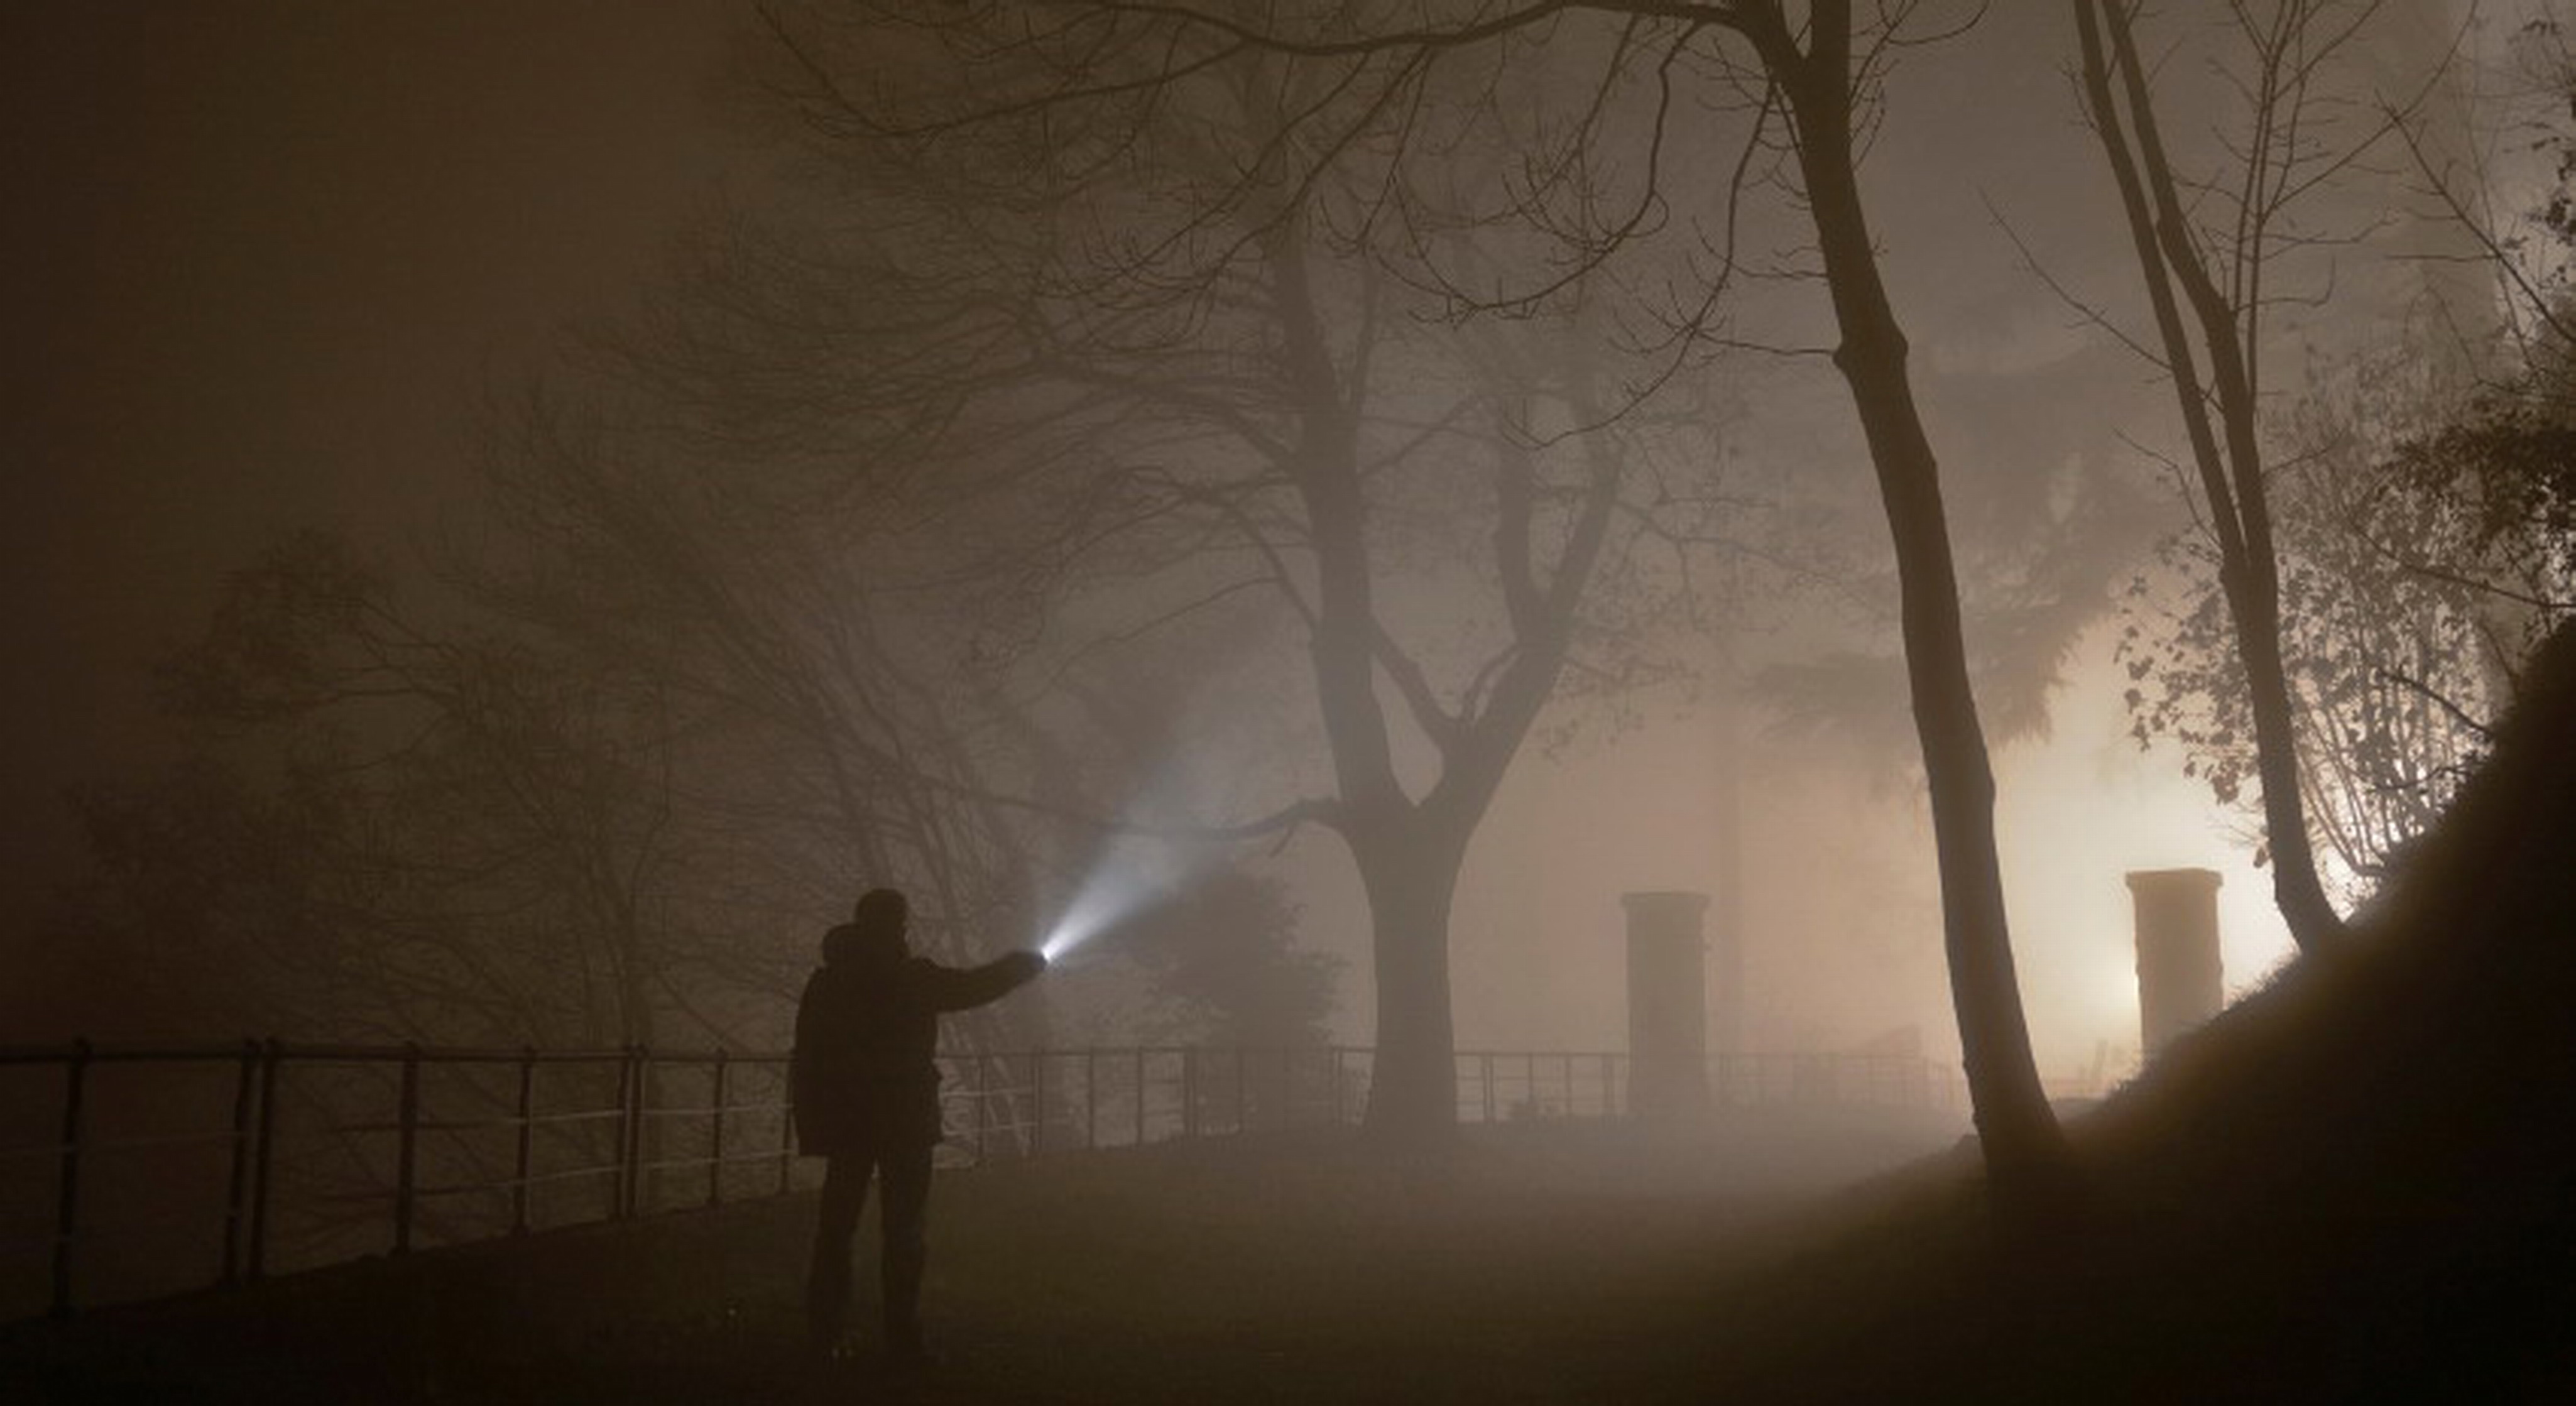 a man in the forest on a foggy night